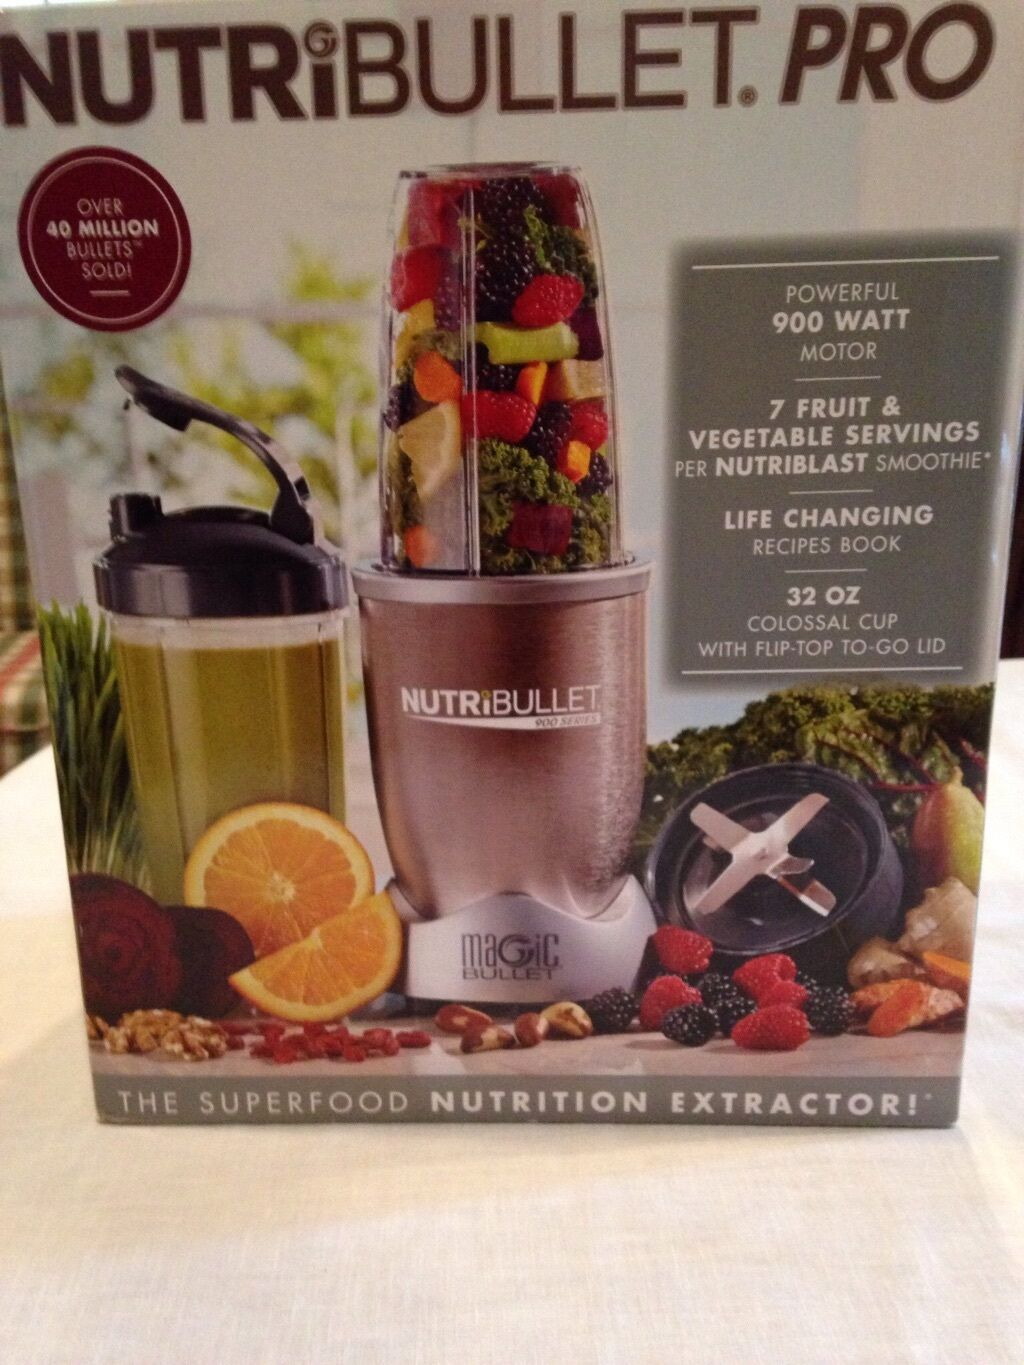 NutriBullet Pro Nutrition Extractor Blender Juicer 900 Watt